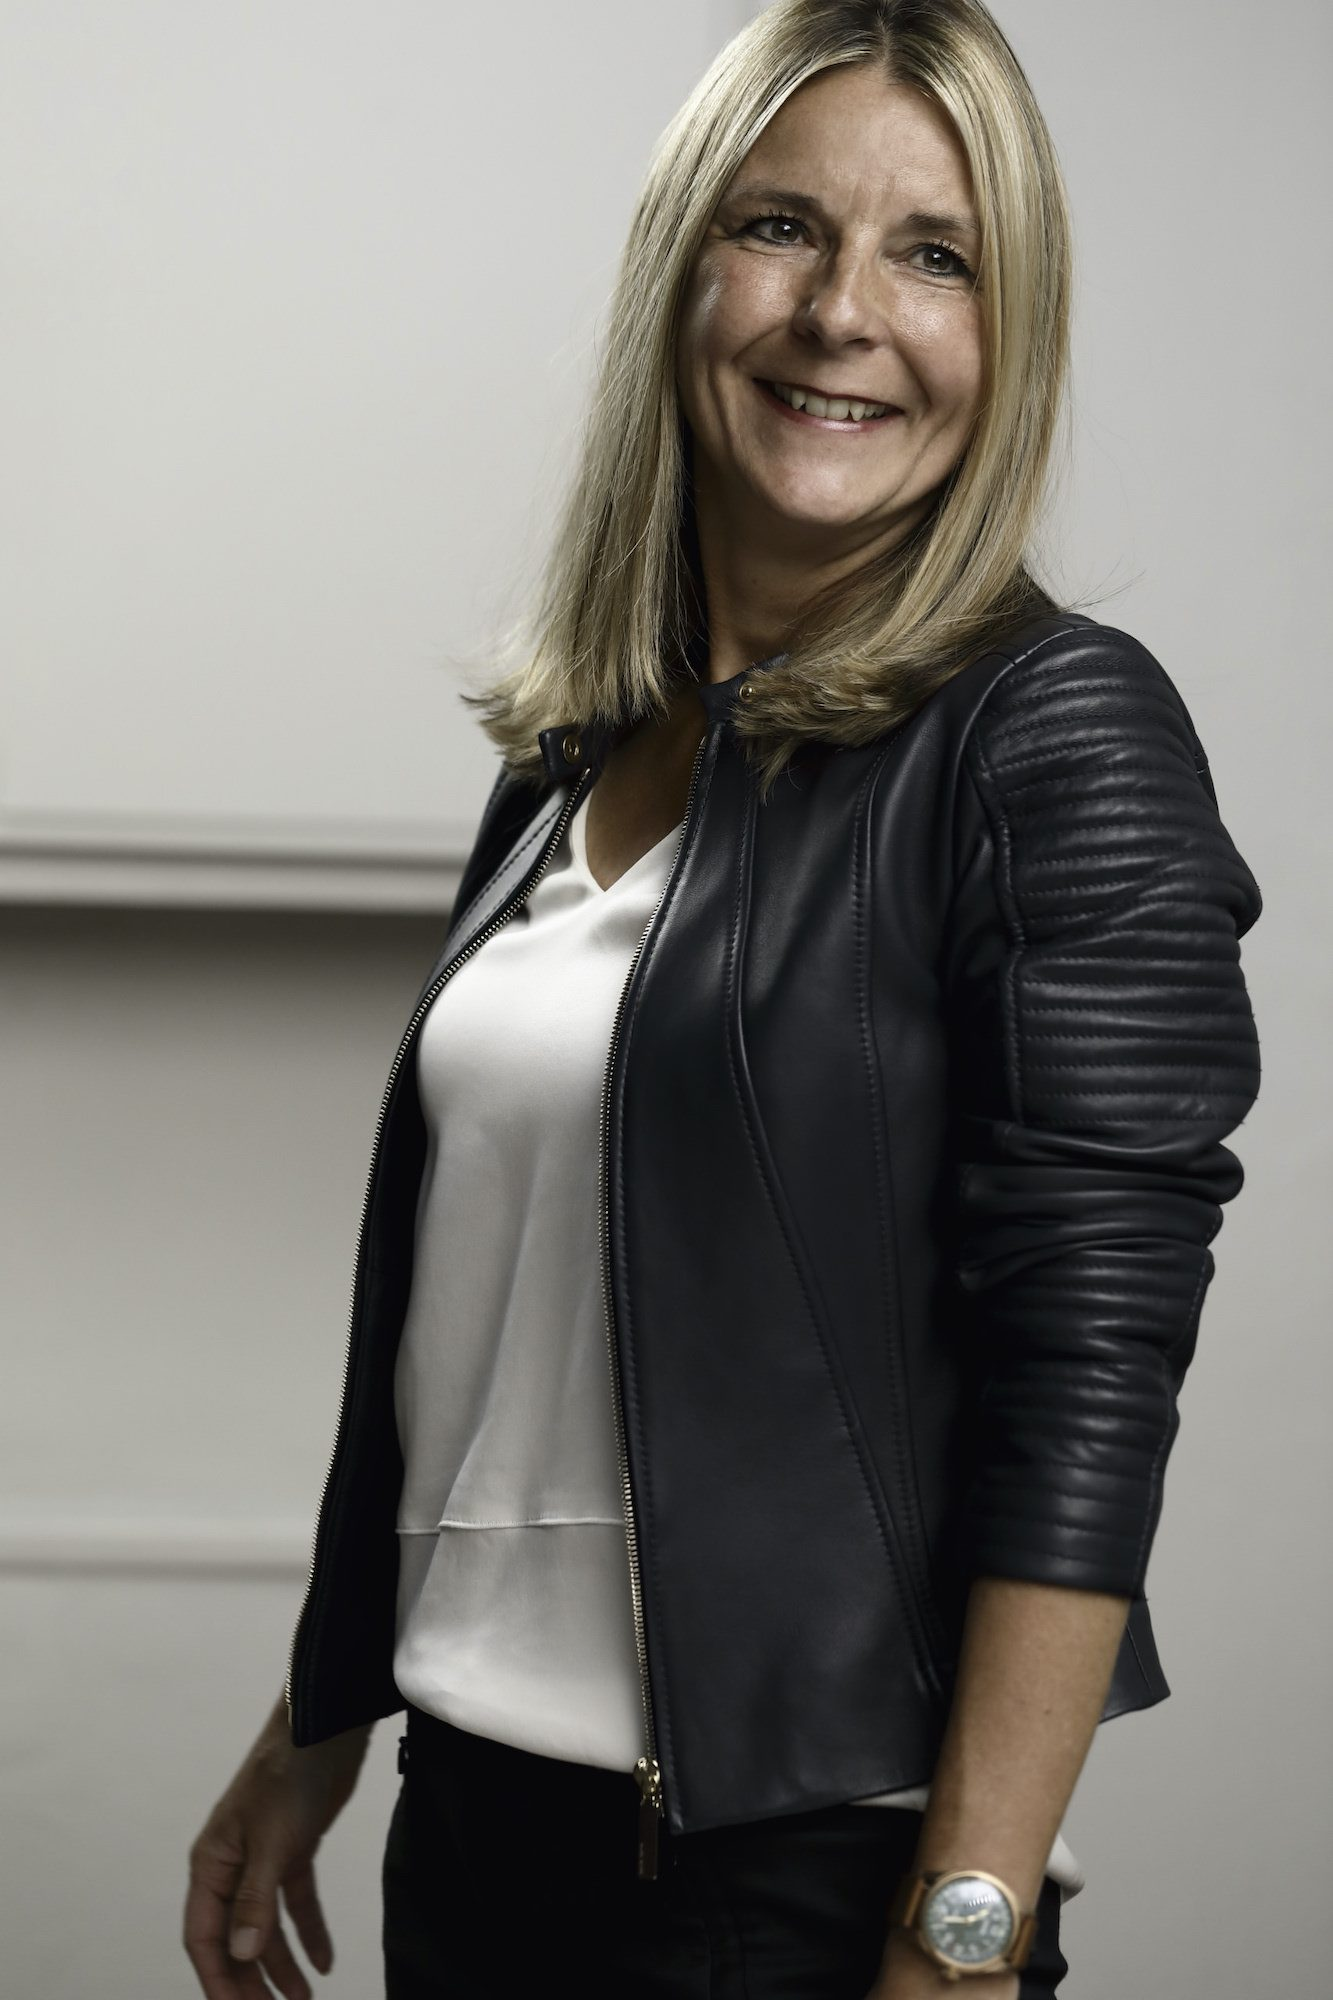 Oris Portrait Claudine Gertiser, Co-CEO